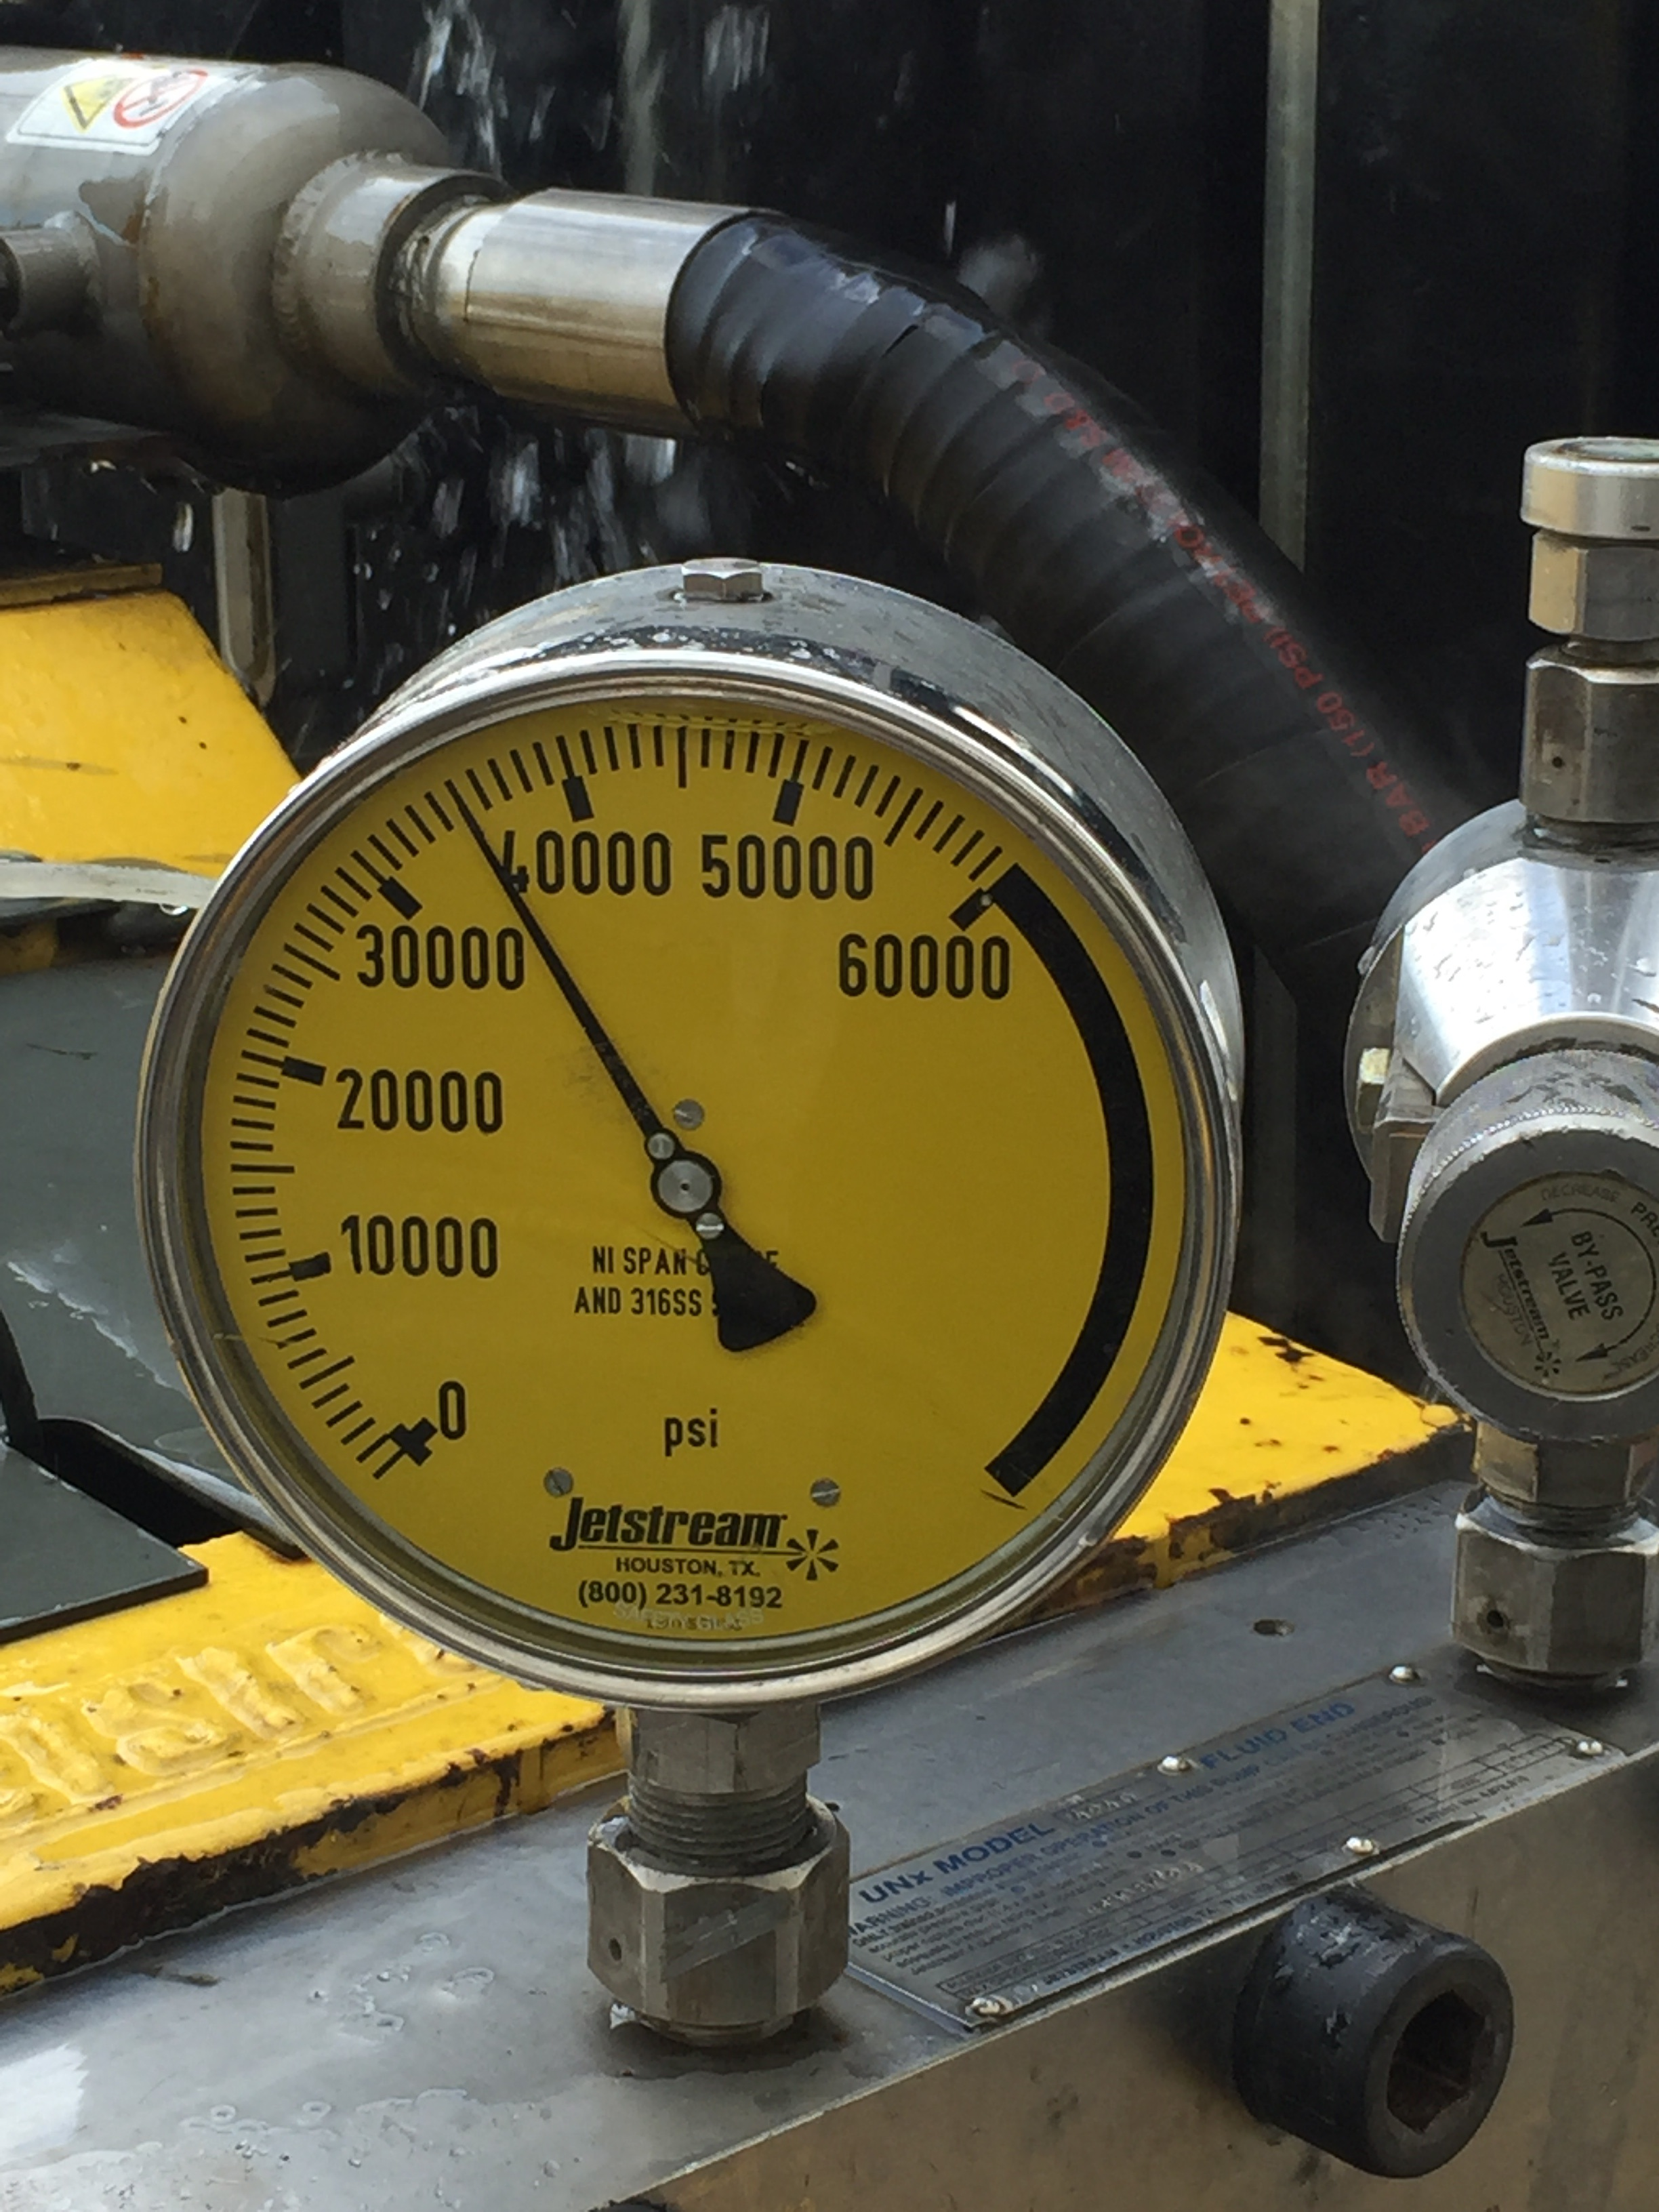 Water pressure PSI gauge